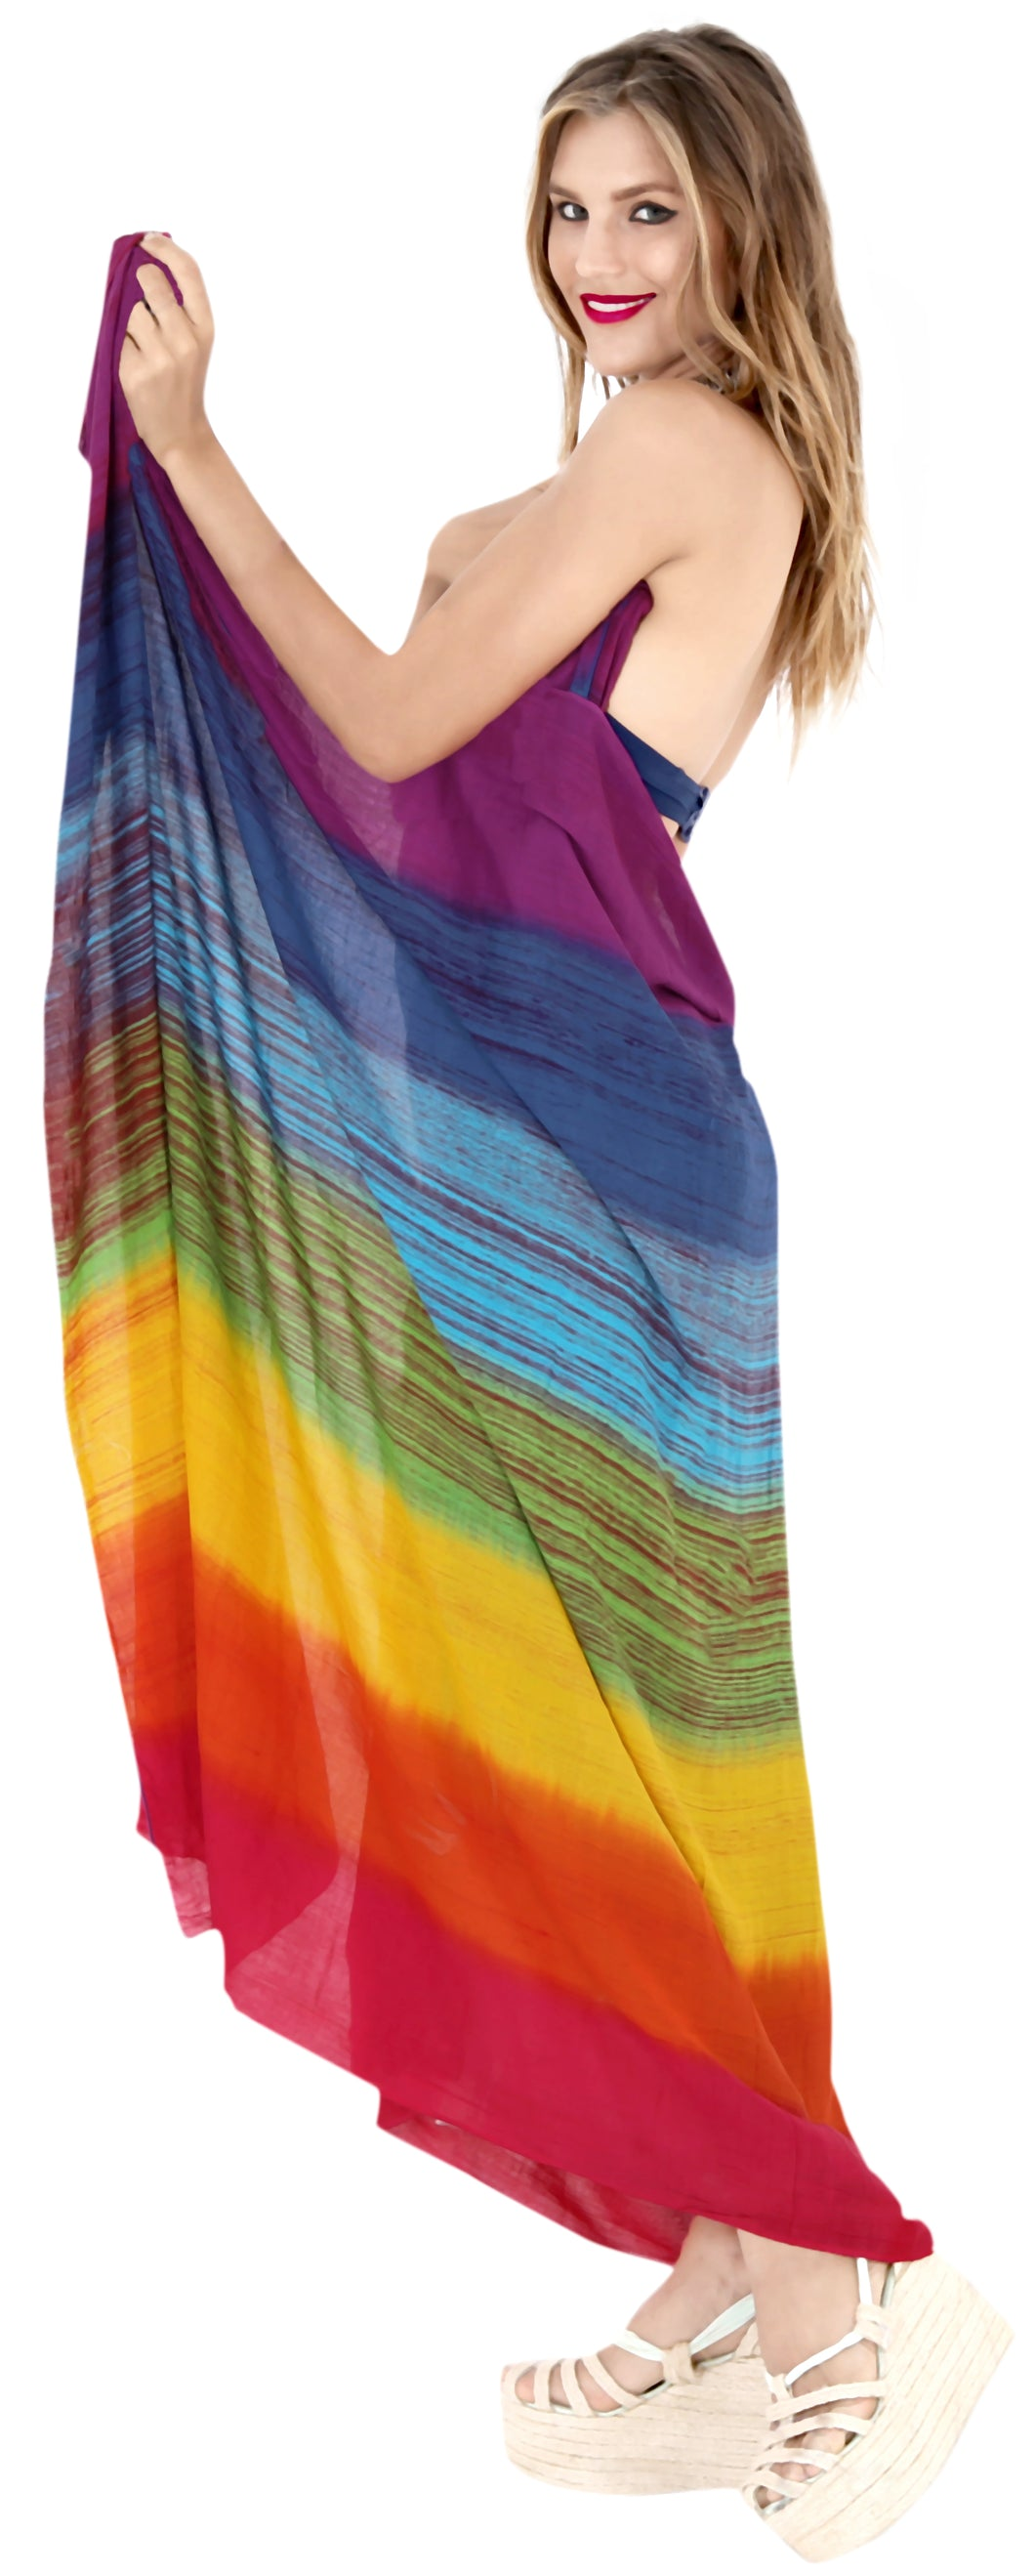 LA LEELA Cover Up Wrap Sarong Bikini Cover up Tie Dye 78